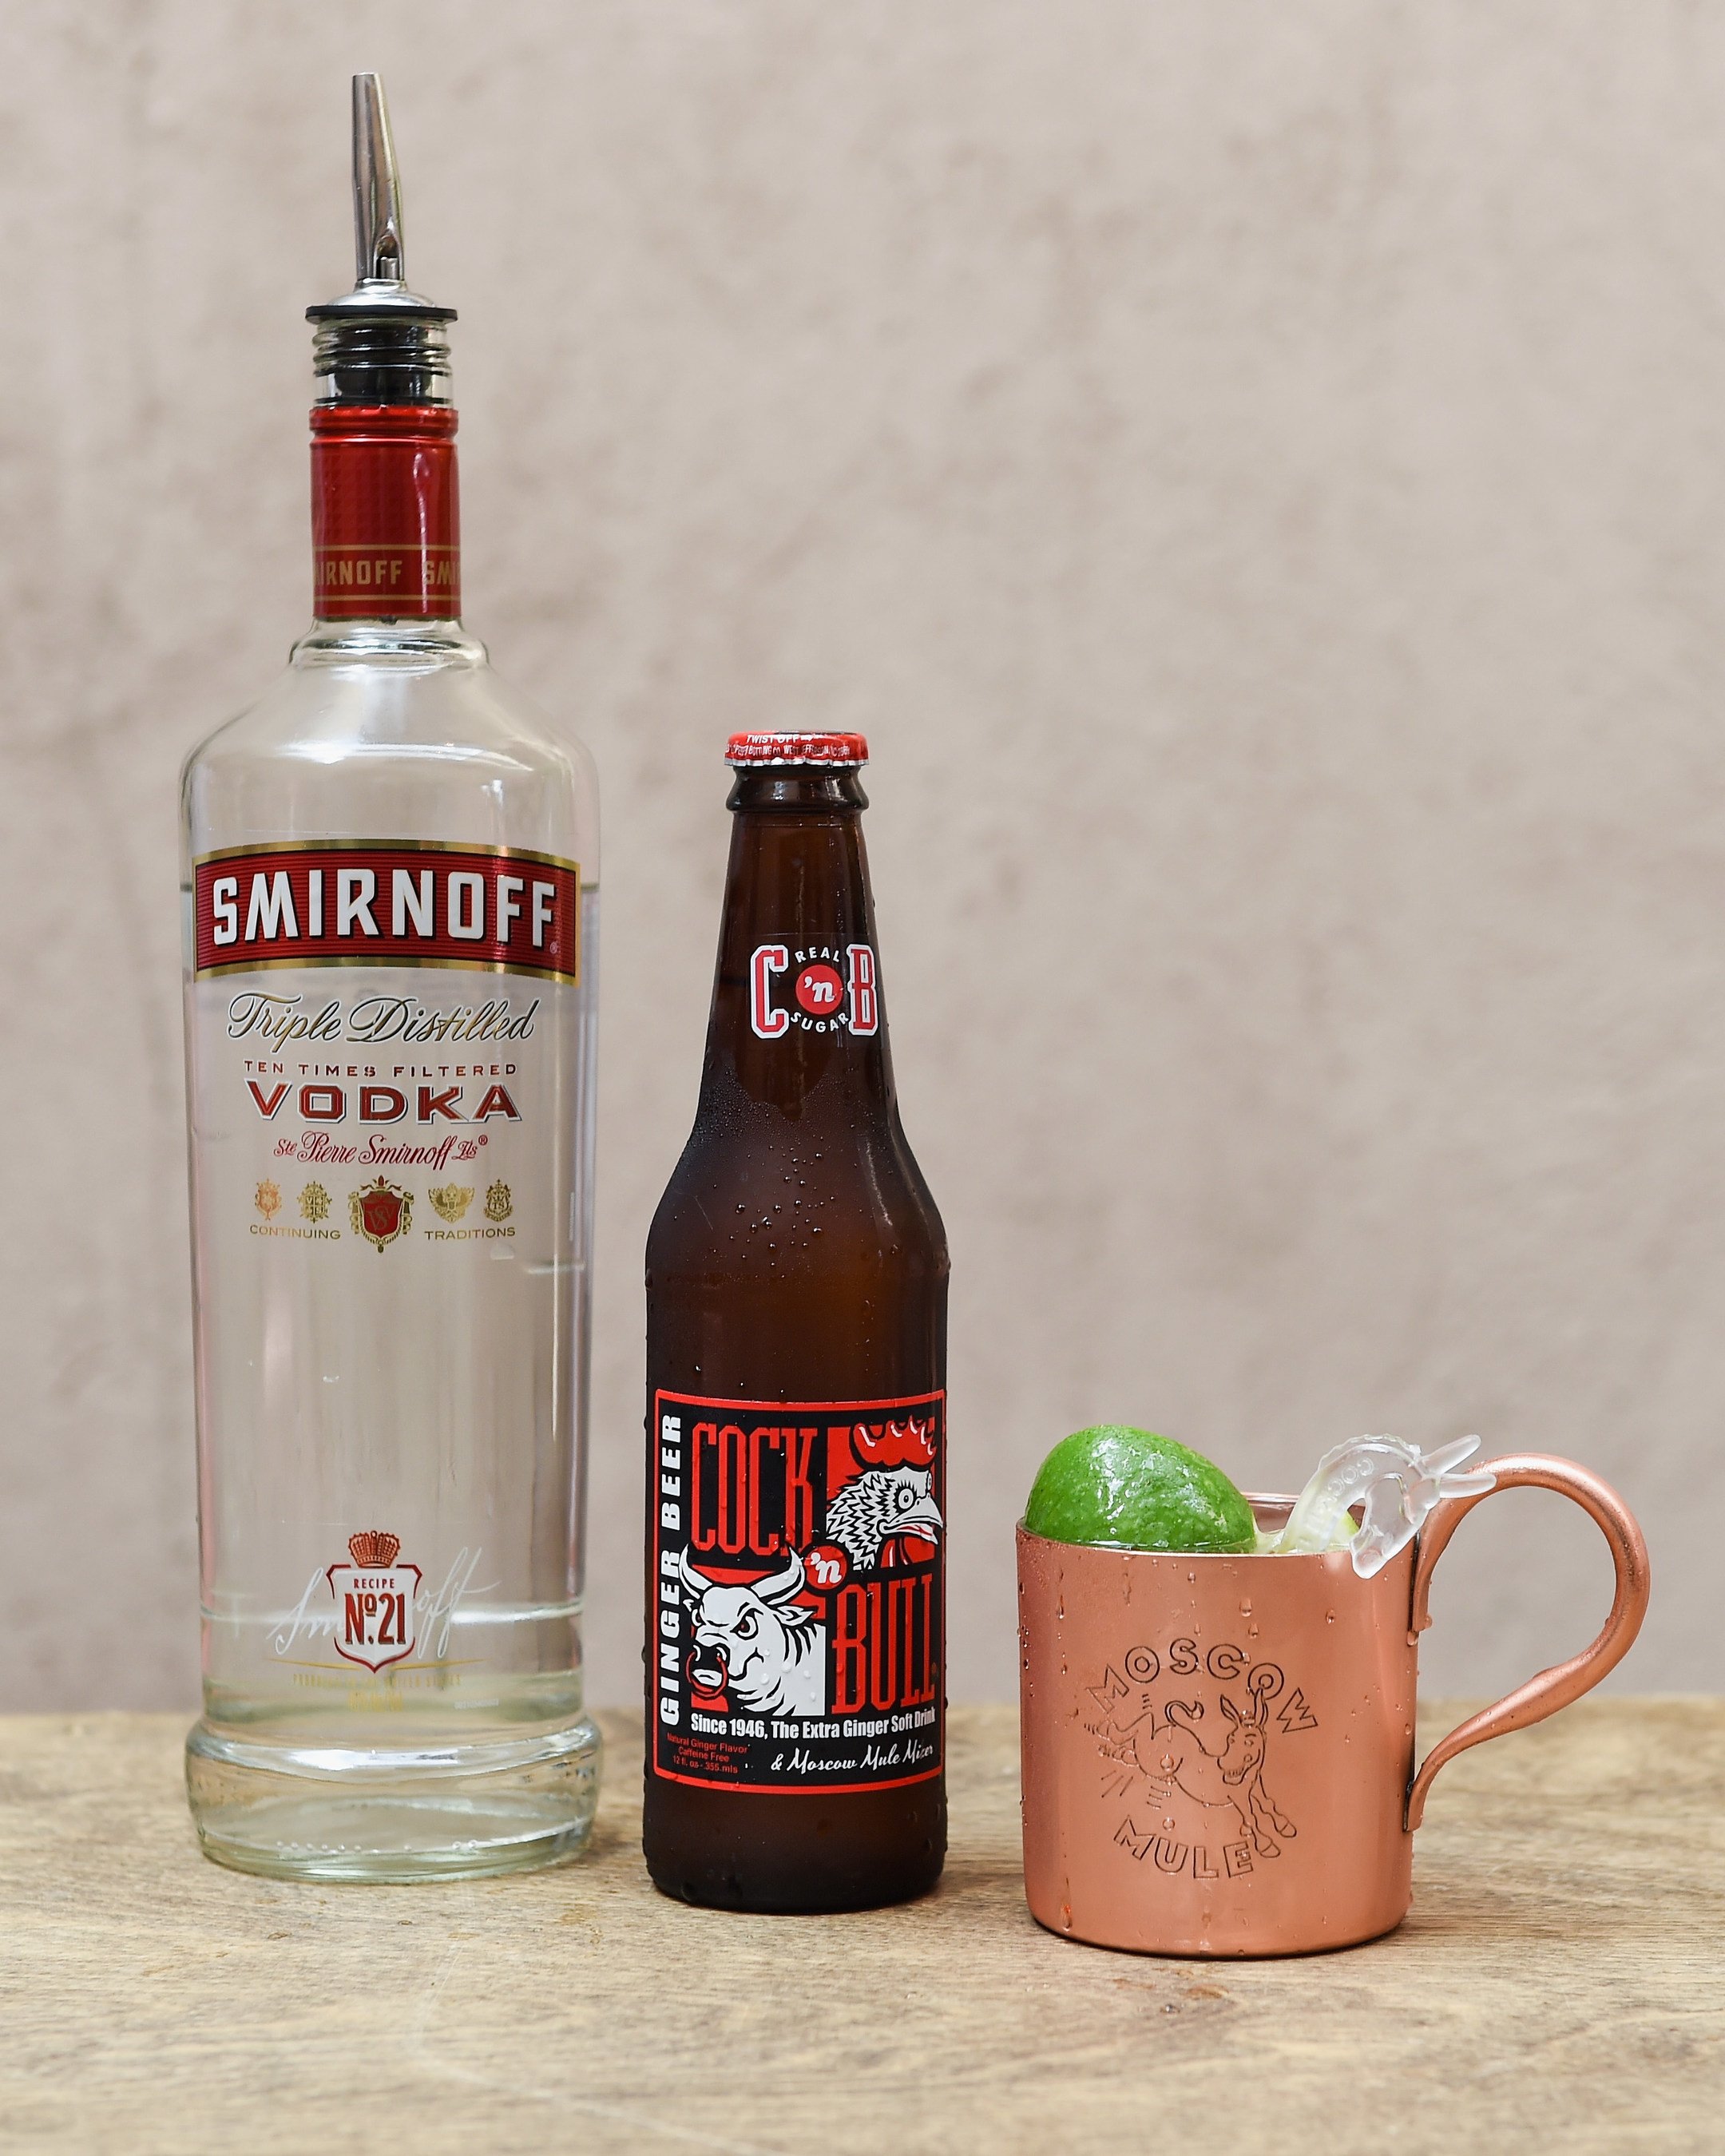 The original Moscow Mule, created 75 years ago, is made with SMIRNOFF No. 21, Cock'n Bull Ginger Beer and a squeeze of lime. (Photo by Erika Goldring/Getty Images for Smirnoff)